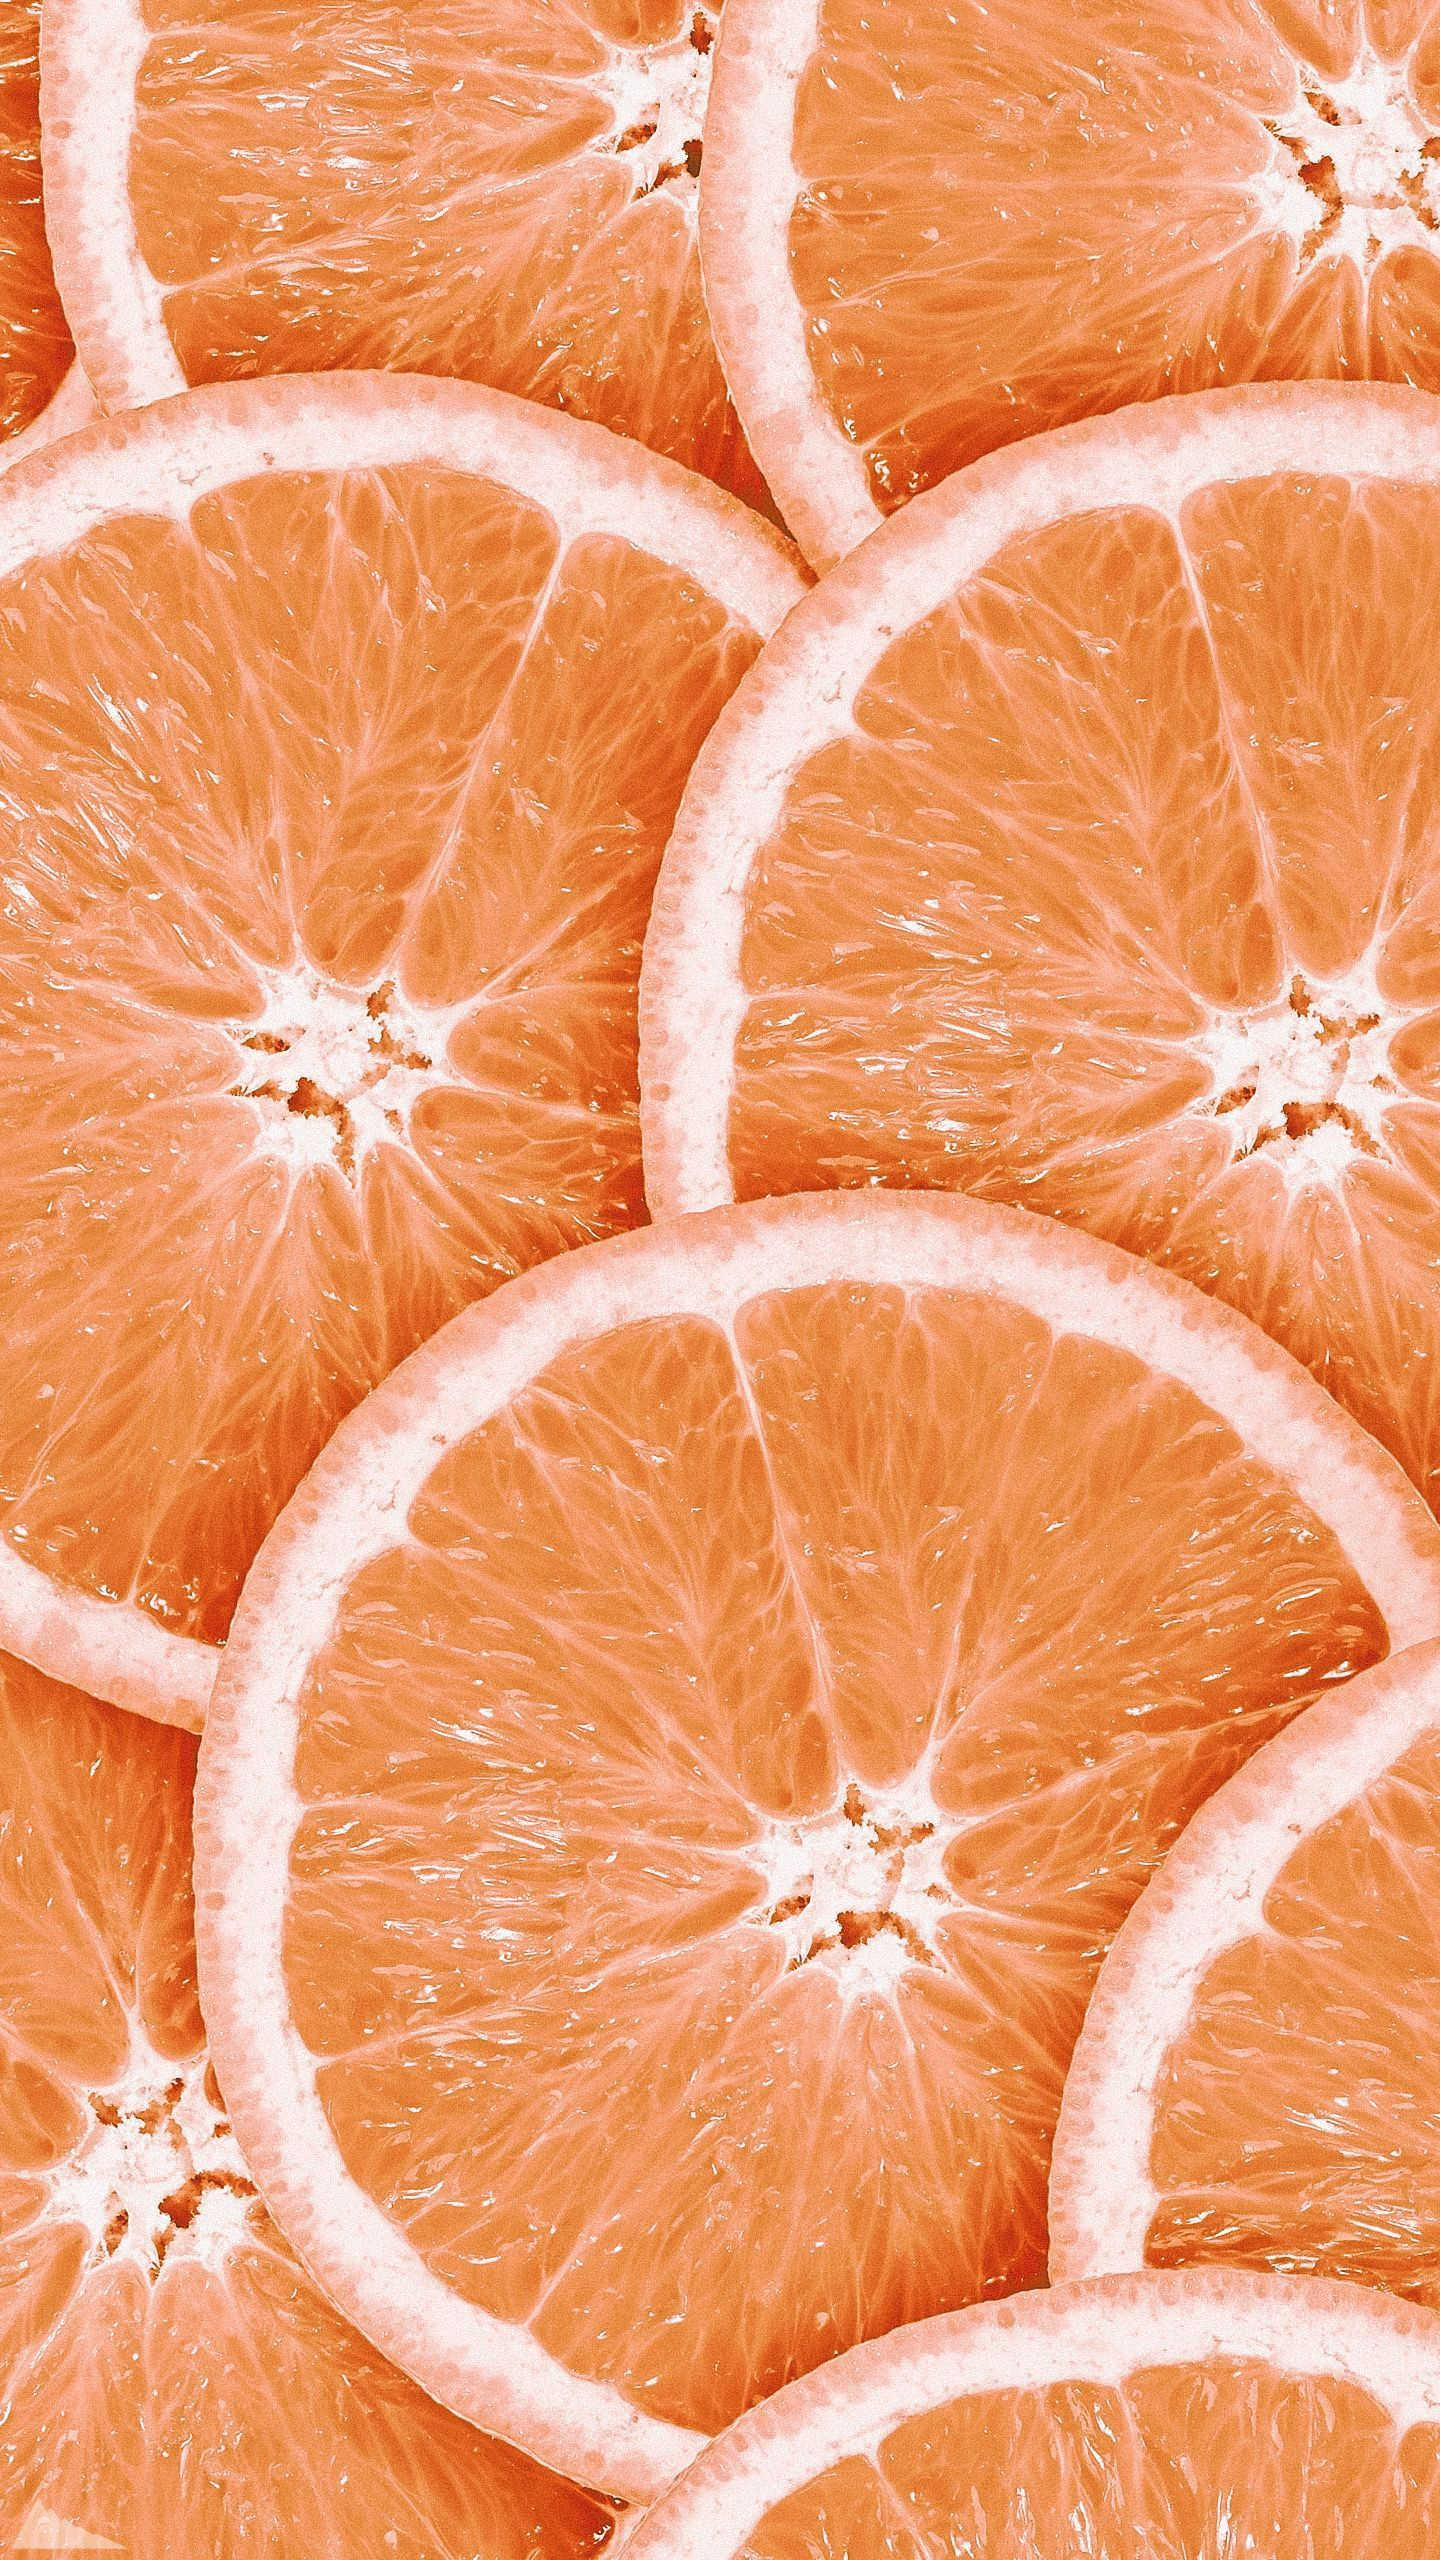 Pin on Spicy McNicey in 2020 Orange wallpaper, Fruit